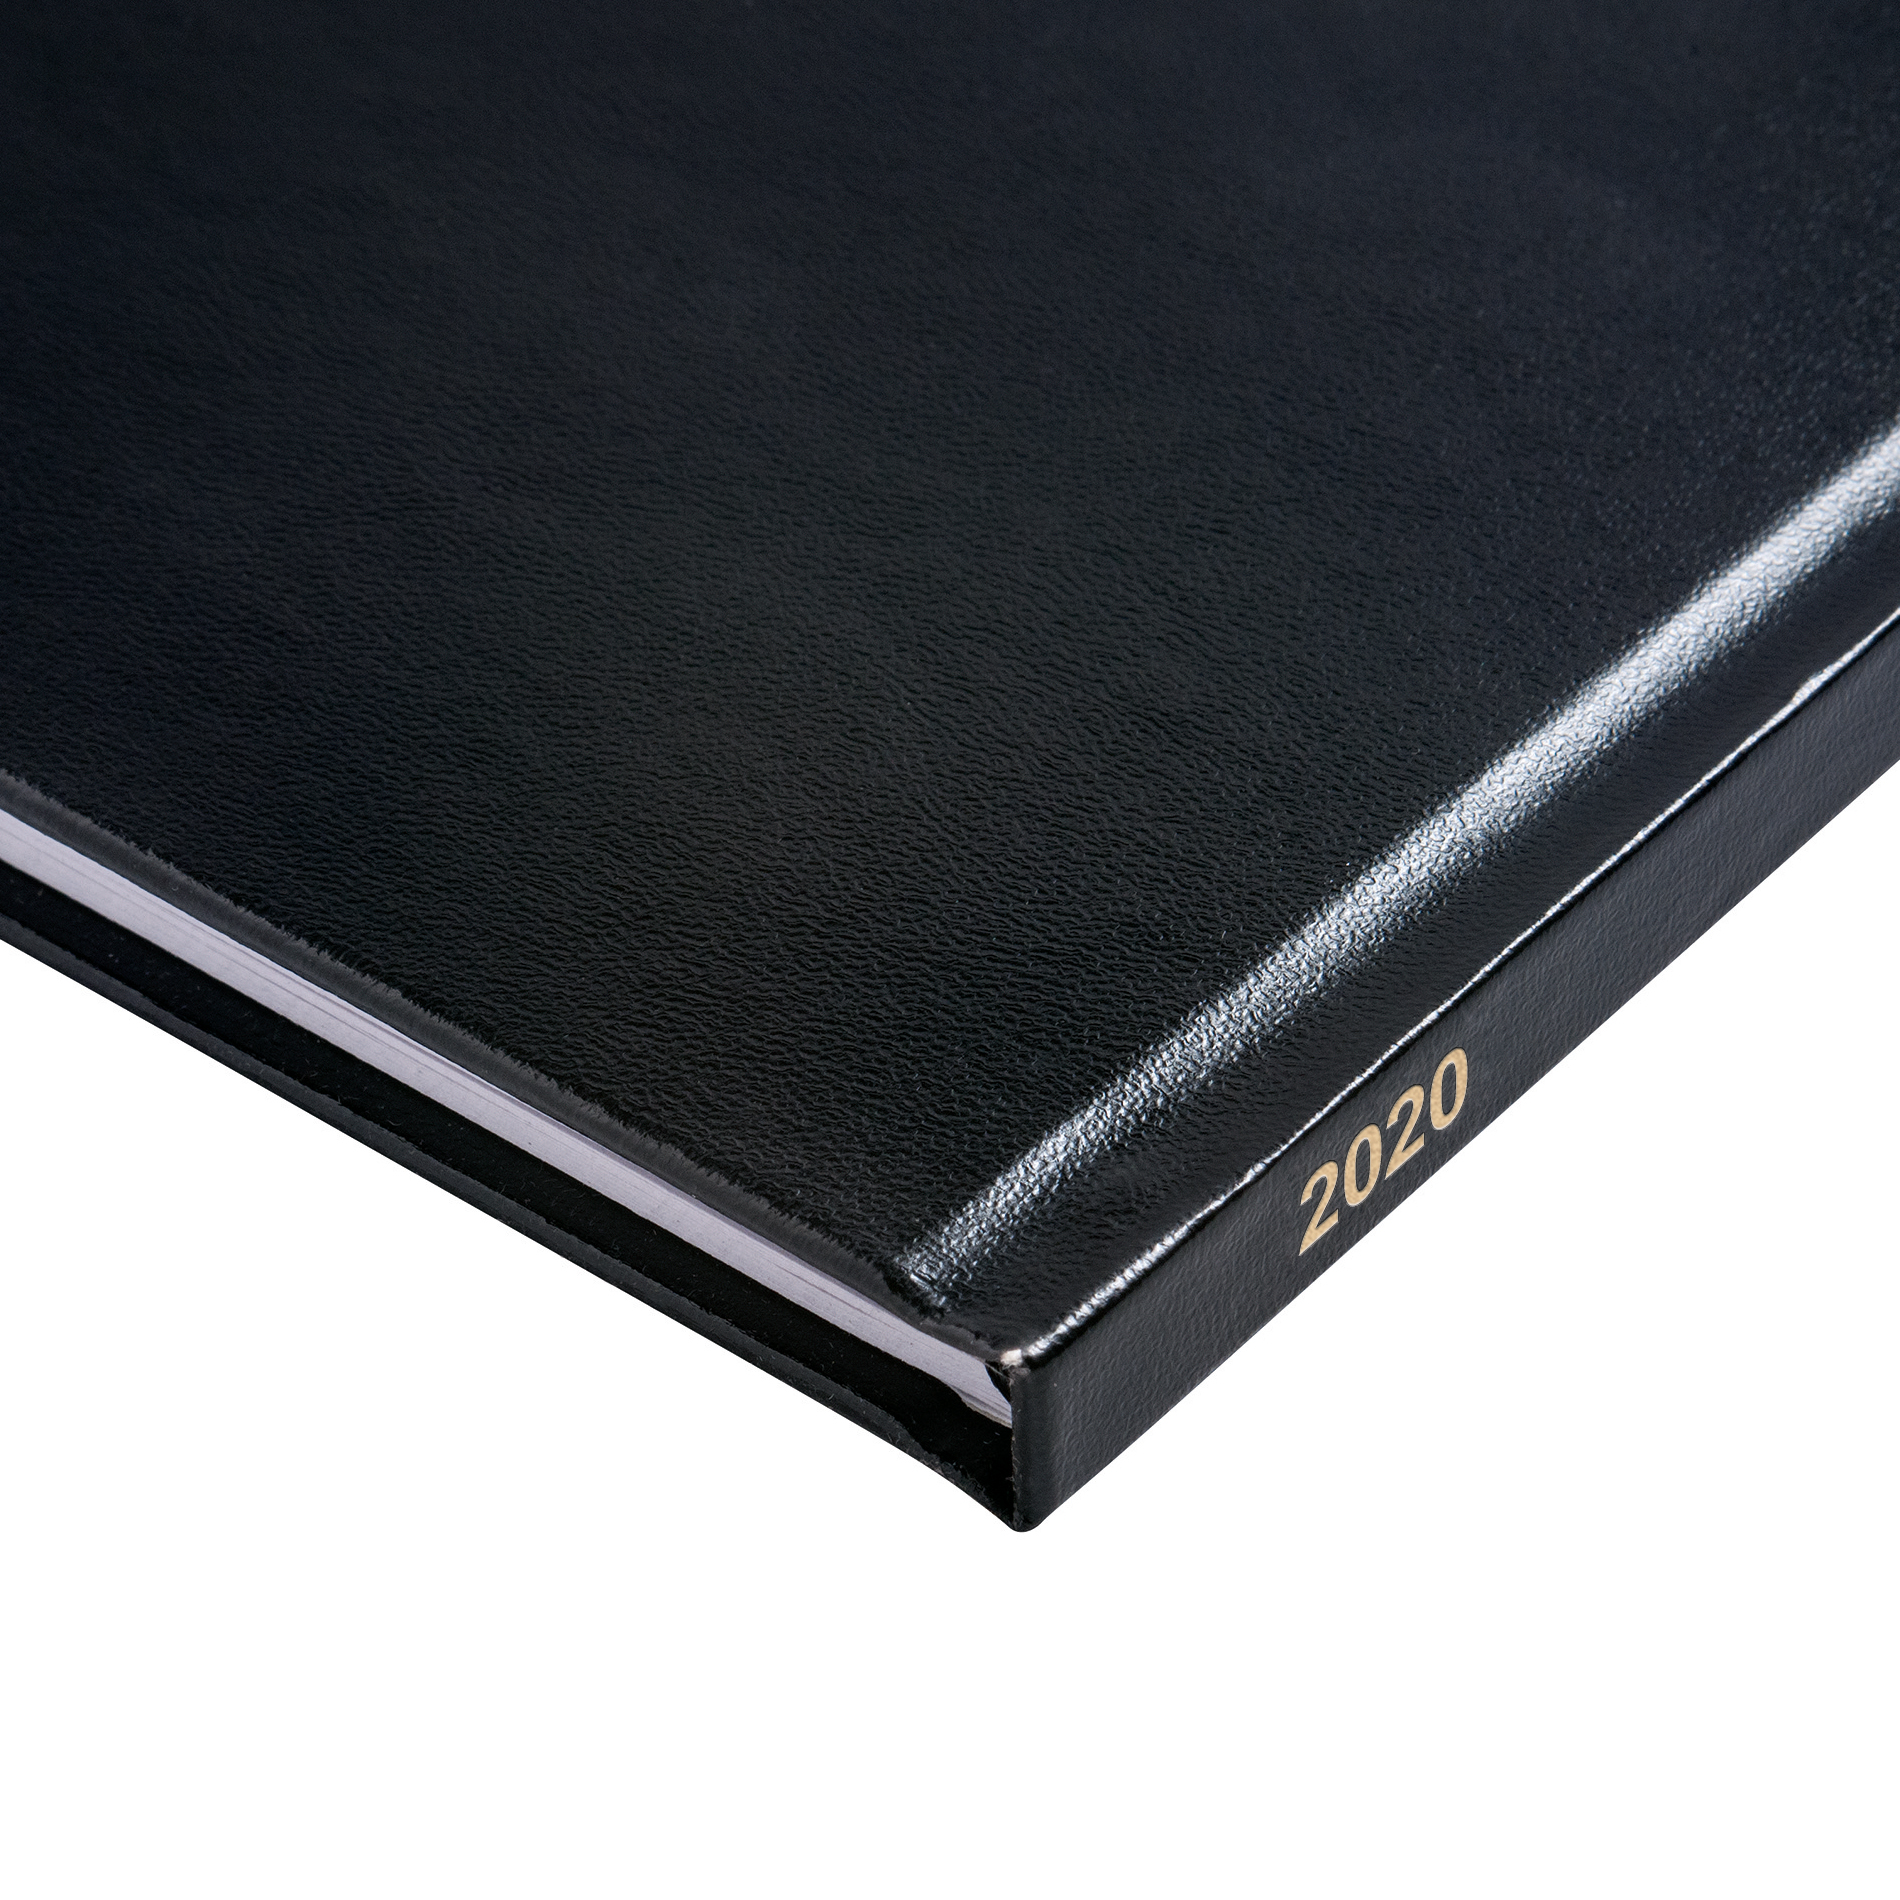 5 Star Office 2020 Quarto Diary Week to View Casebound and Sewn Vinyl Coated Board 220x270mm Black